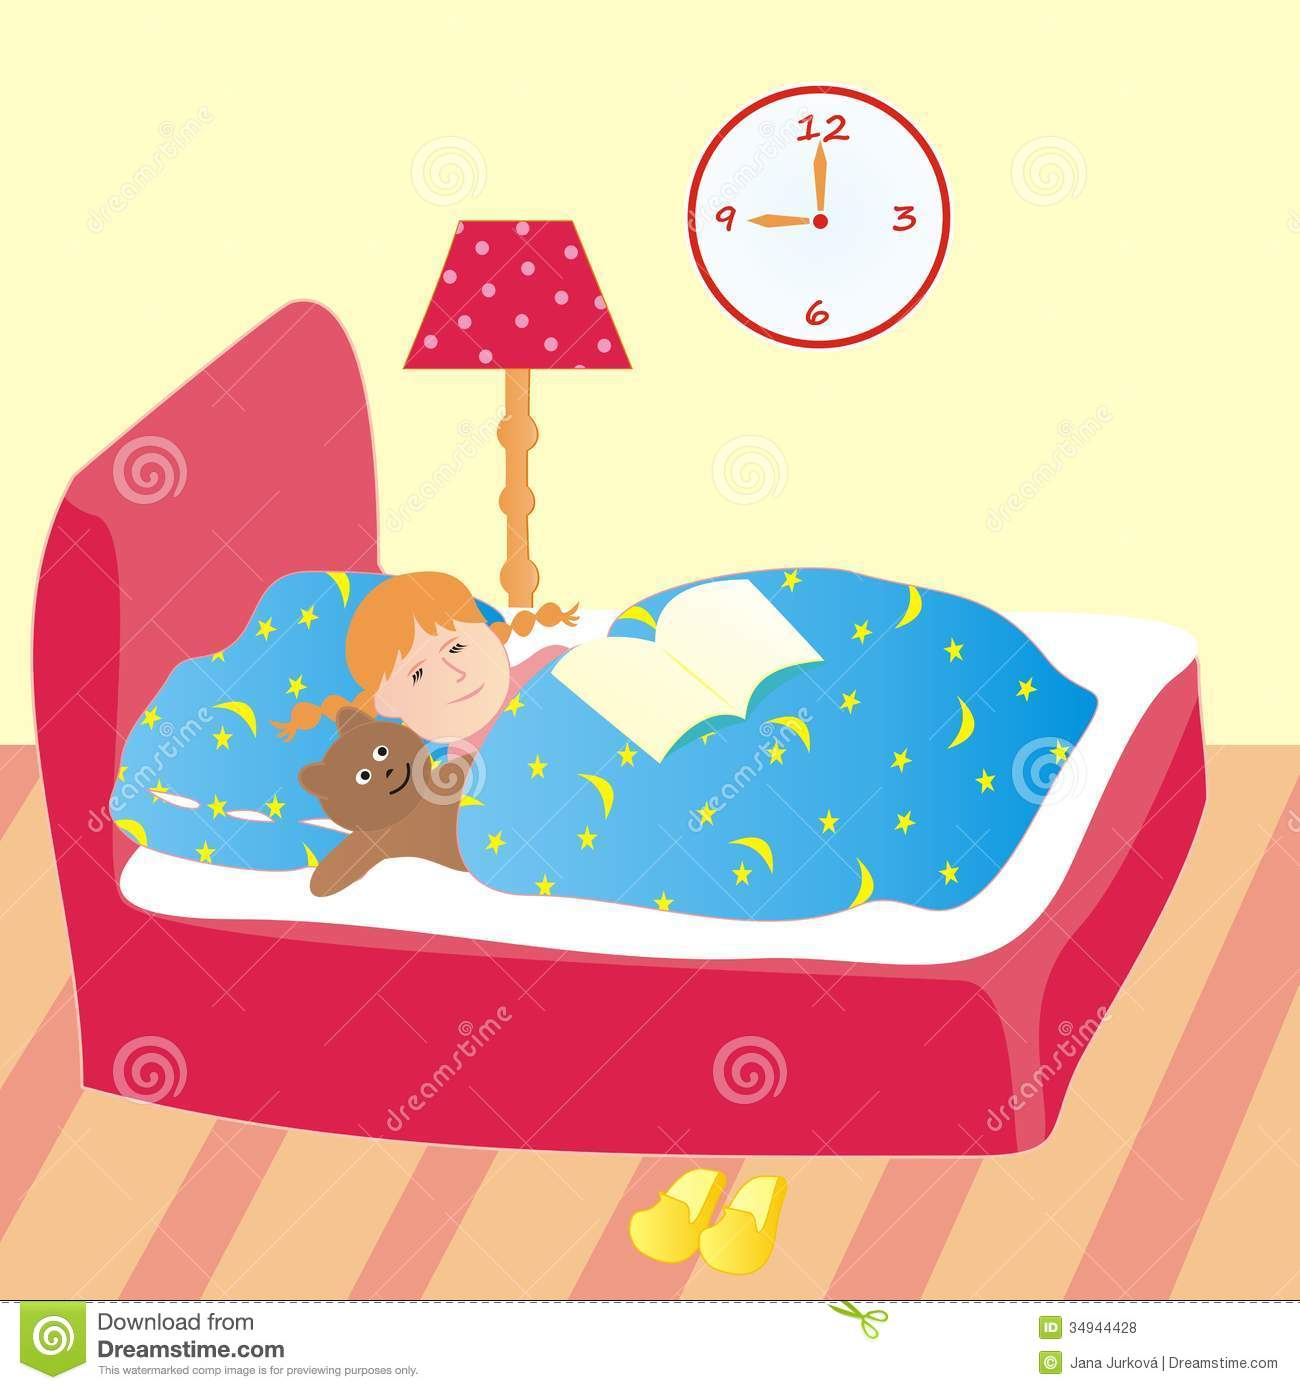 Feather beds clipground featherbed. Clipart bed sleep early